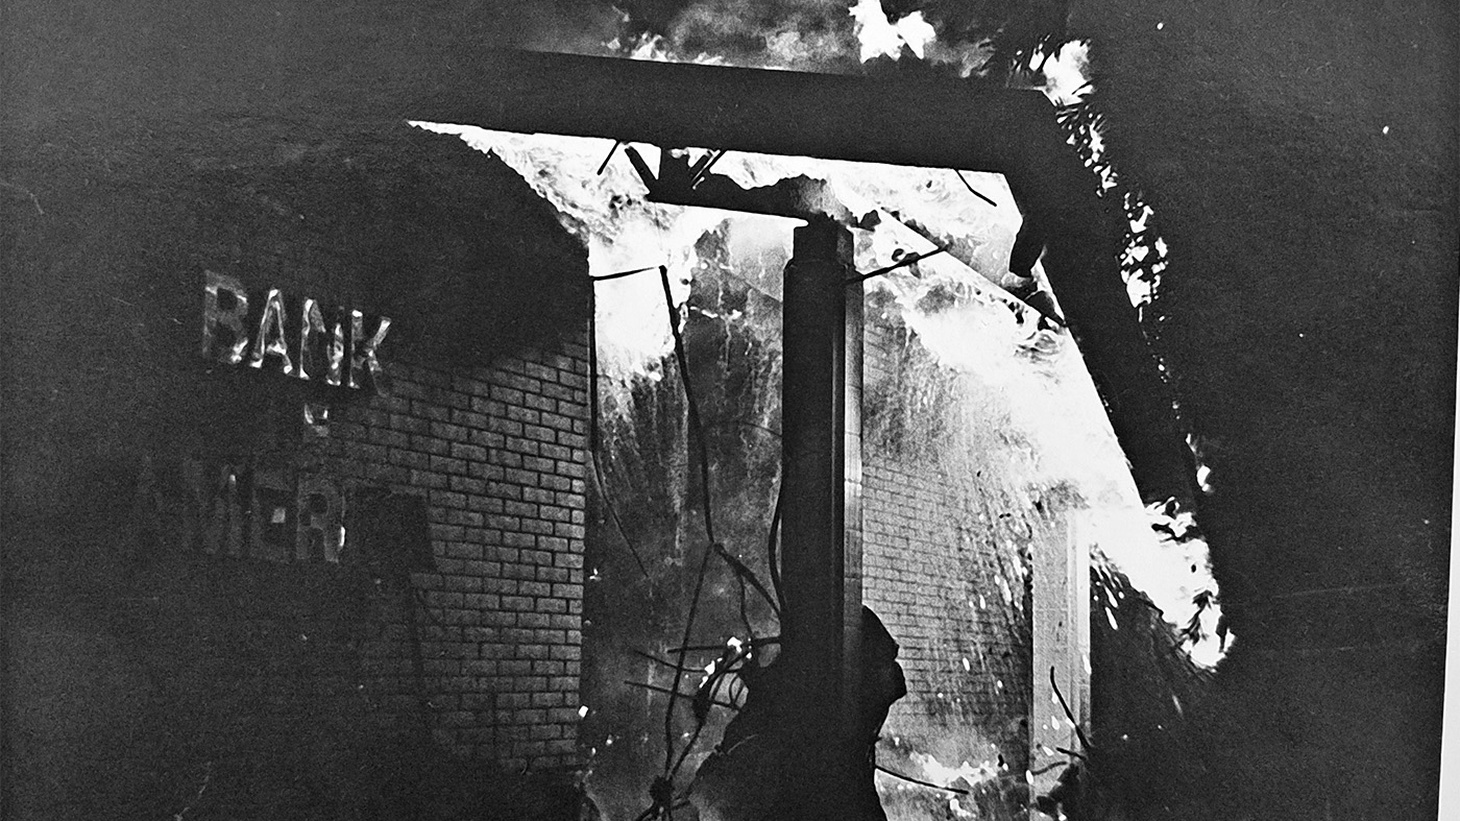 The Bank of America building on fire in Isla Vista on February 25th, 1970.